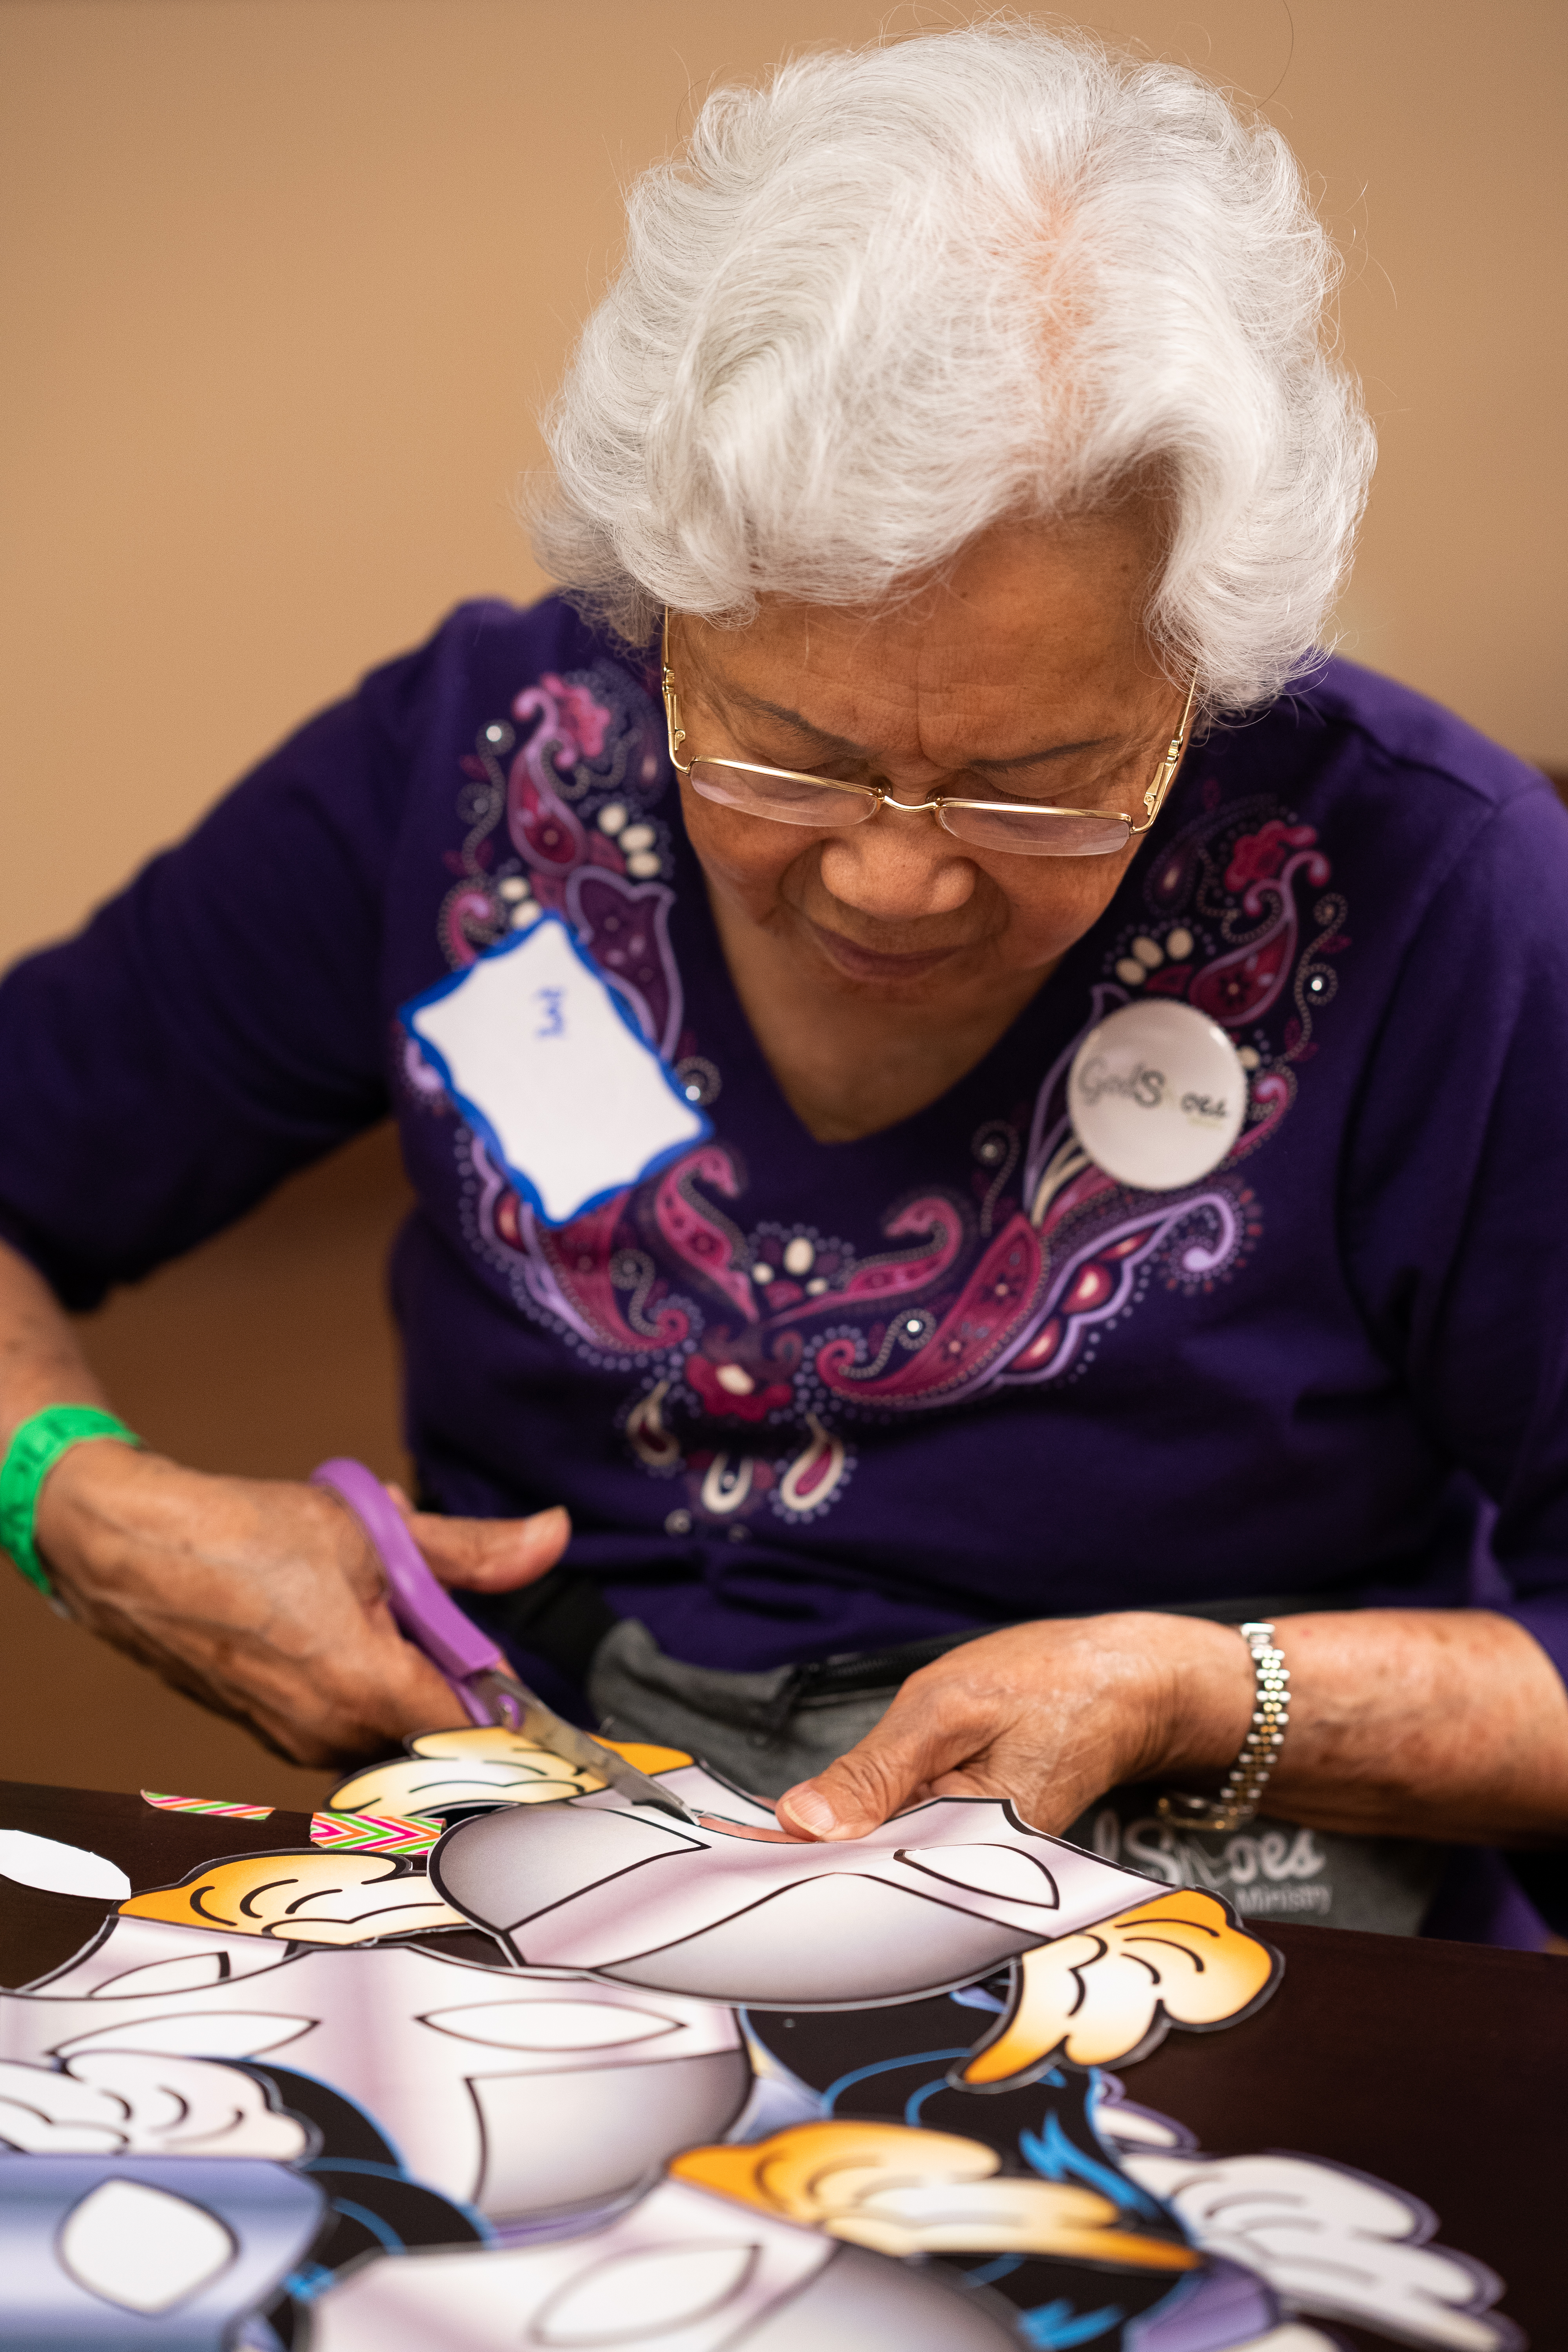 A 97-year-old volunteer cuts out photo-booth props at the New Hope for Kids center.